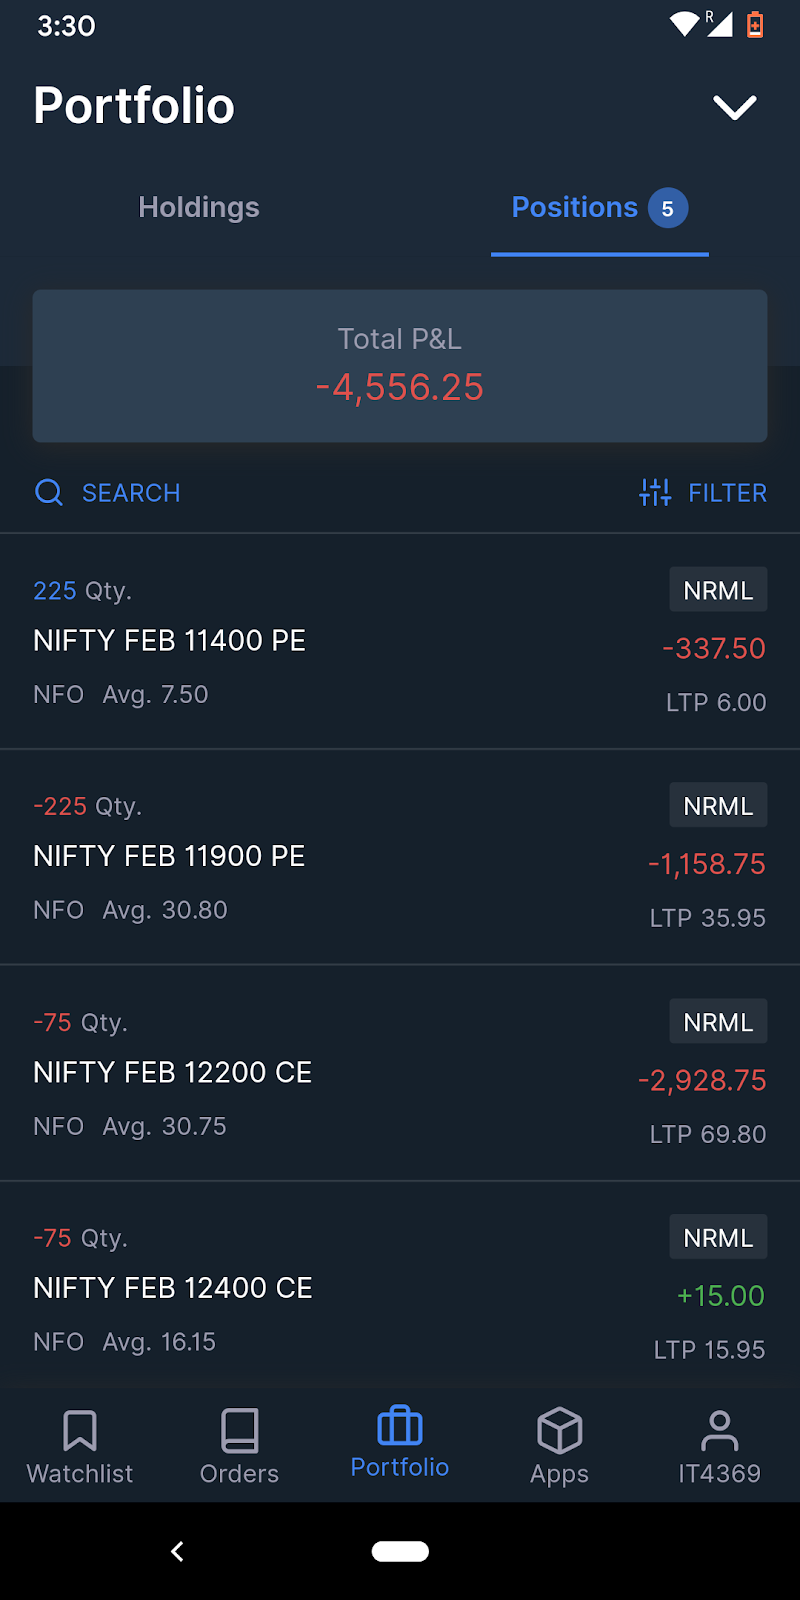 P&L for 14 Feb